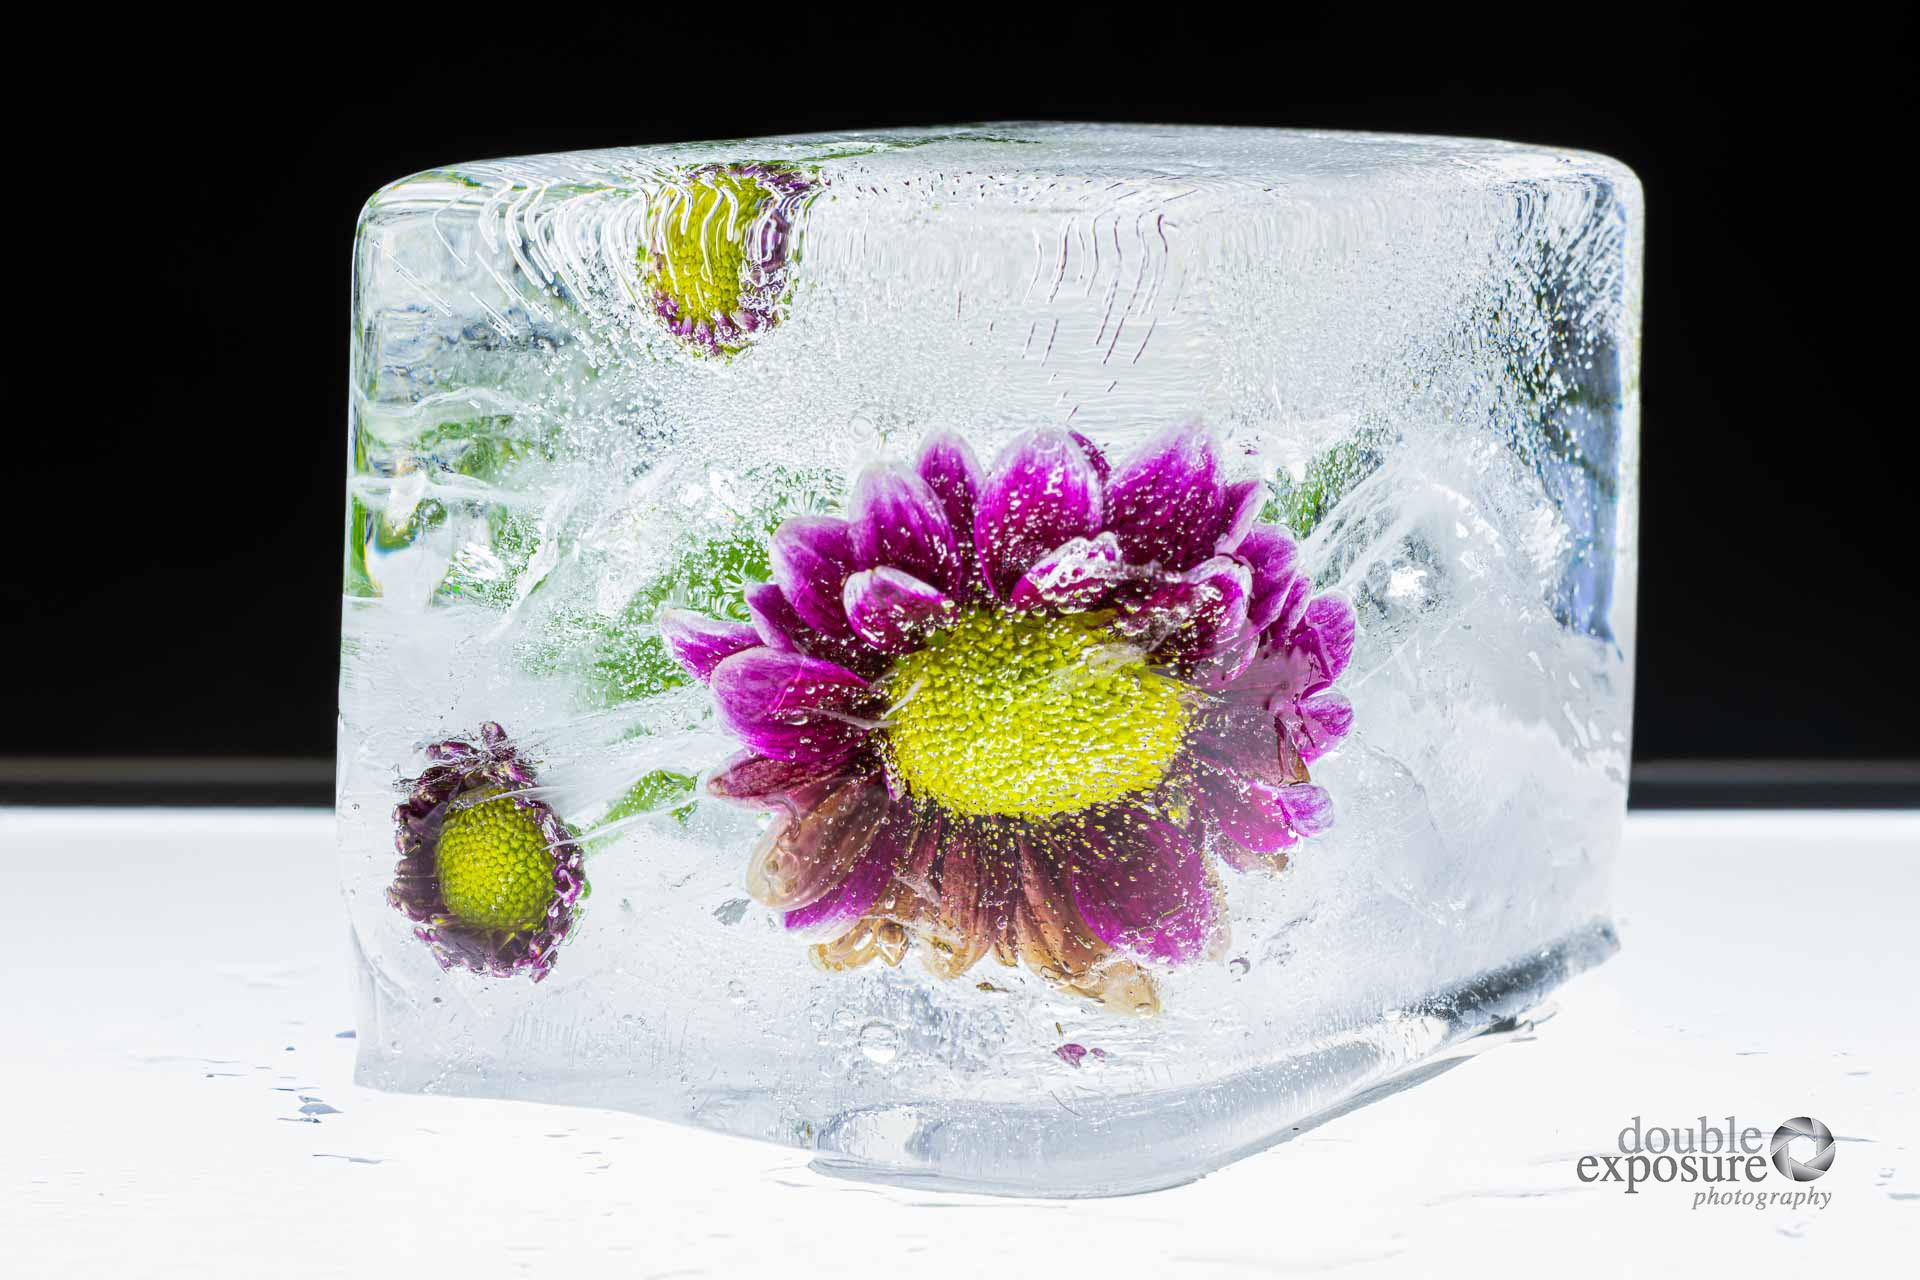 beautiful flowers photographed in ice